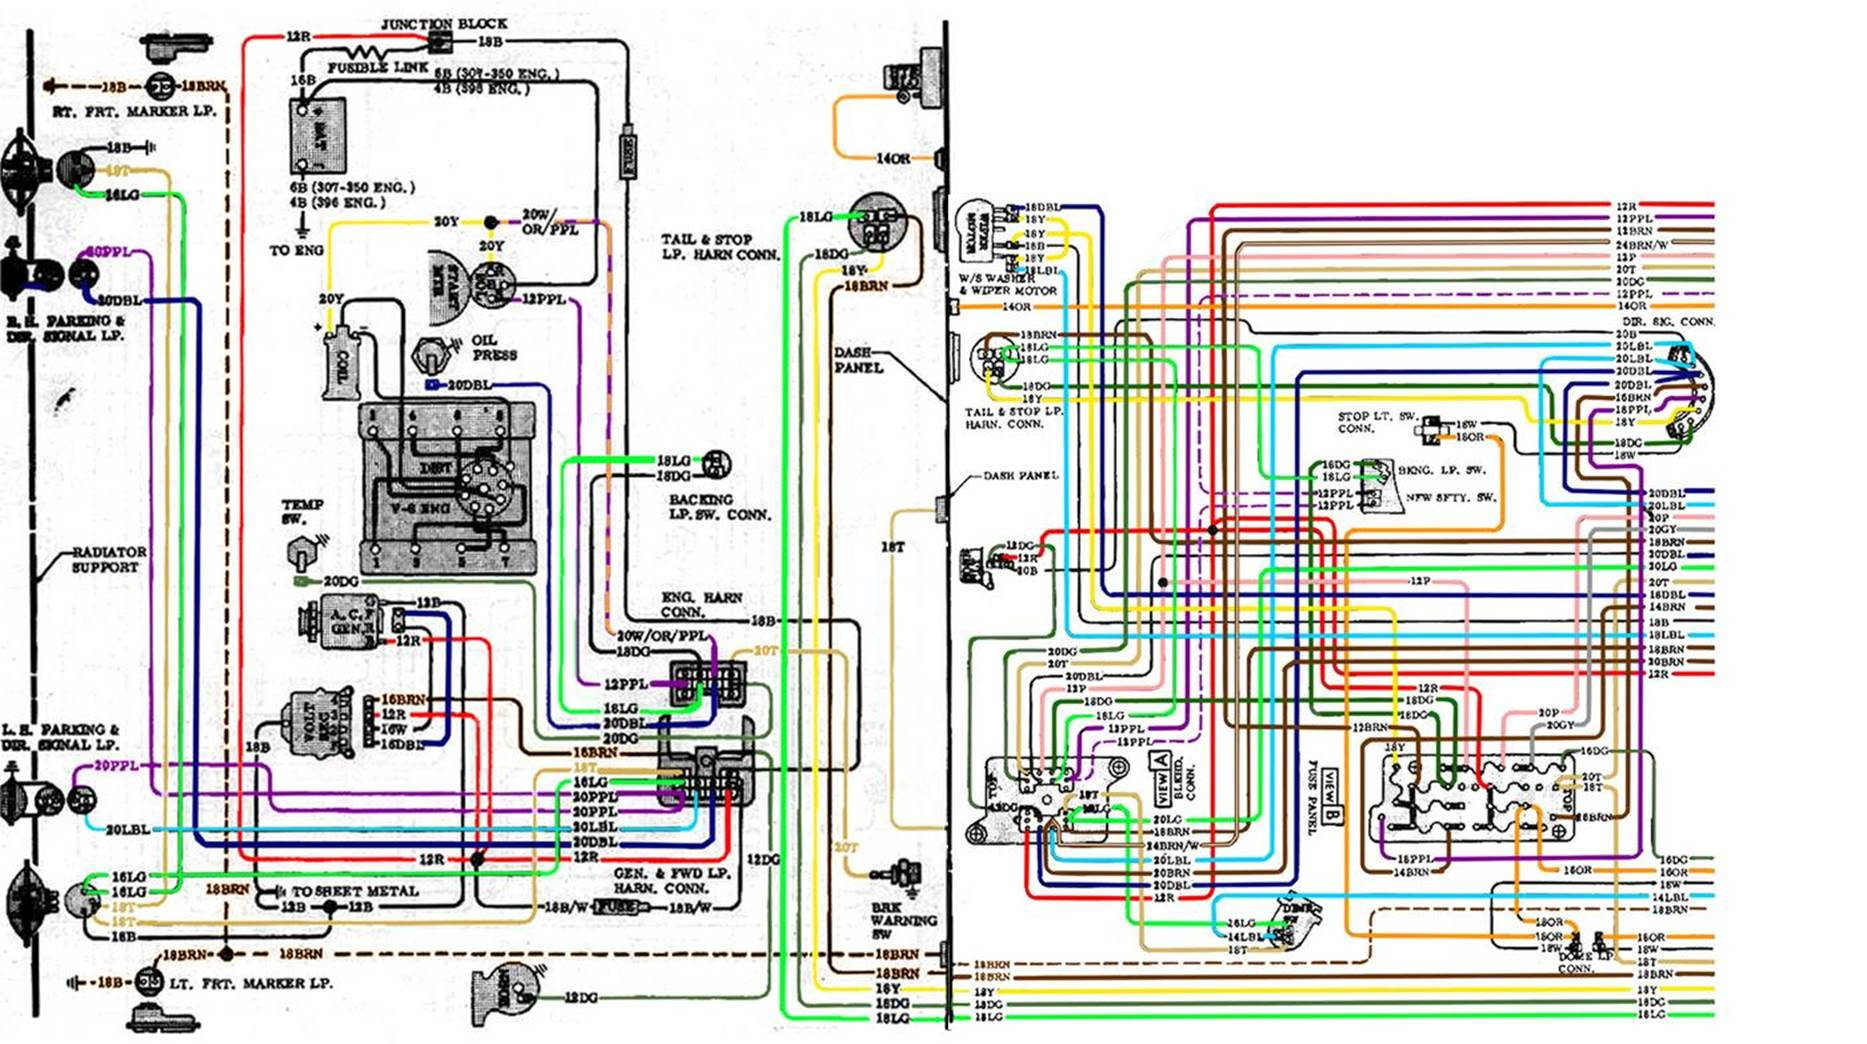 image002 72 c10 wiring diagram chevy truck wiring diagram \u2022 wiring diagrams 1966 chevy nova wiring diagram at edmiracle.co